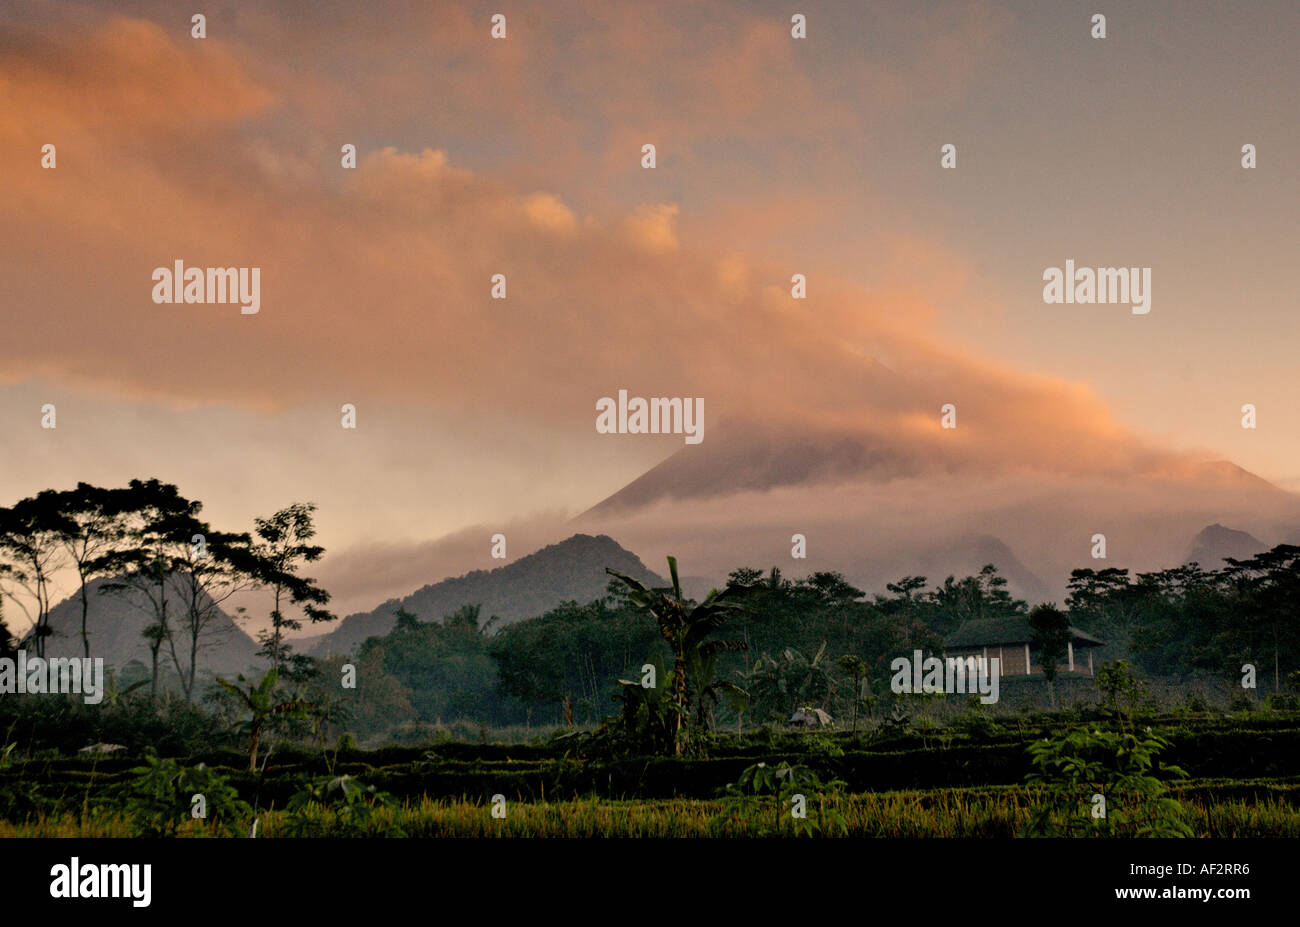 Merapi volcano emitted large gas clouds covering Keteb village in  pyroclastic ash, Yogyakarta, Java, Indonesia. - Stock Image